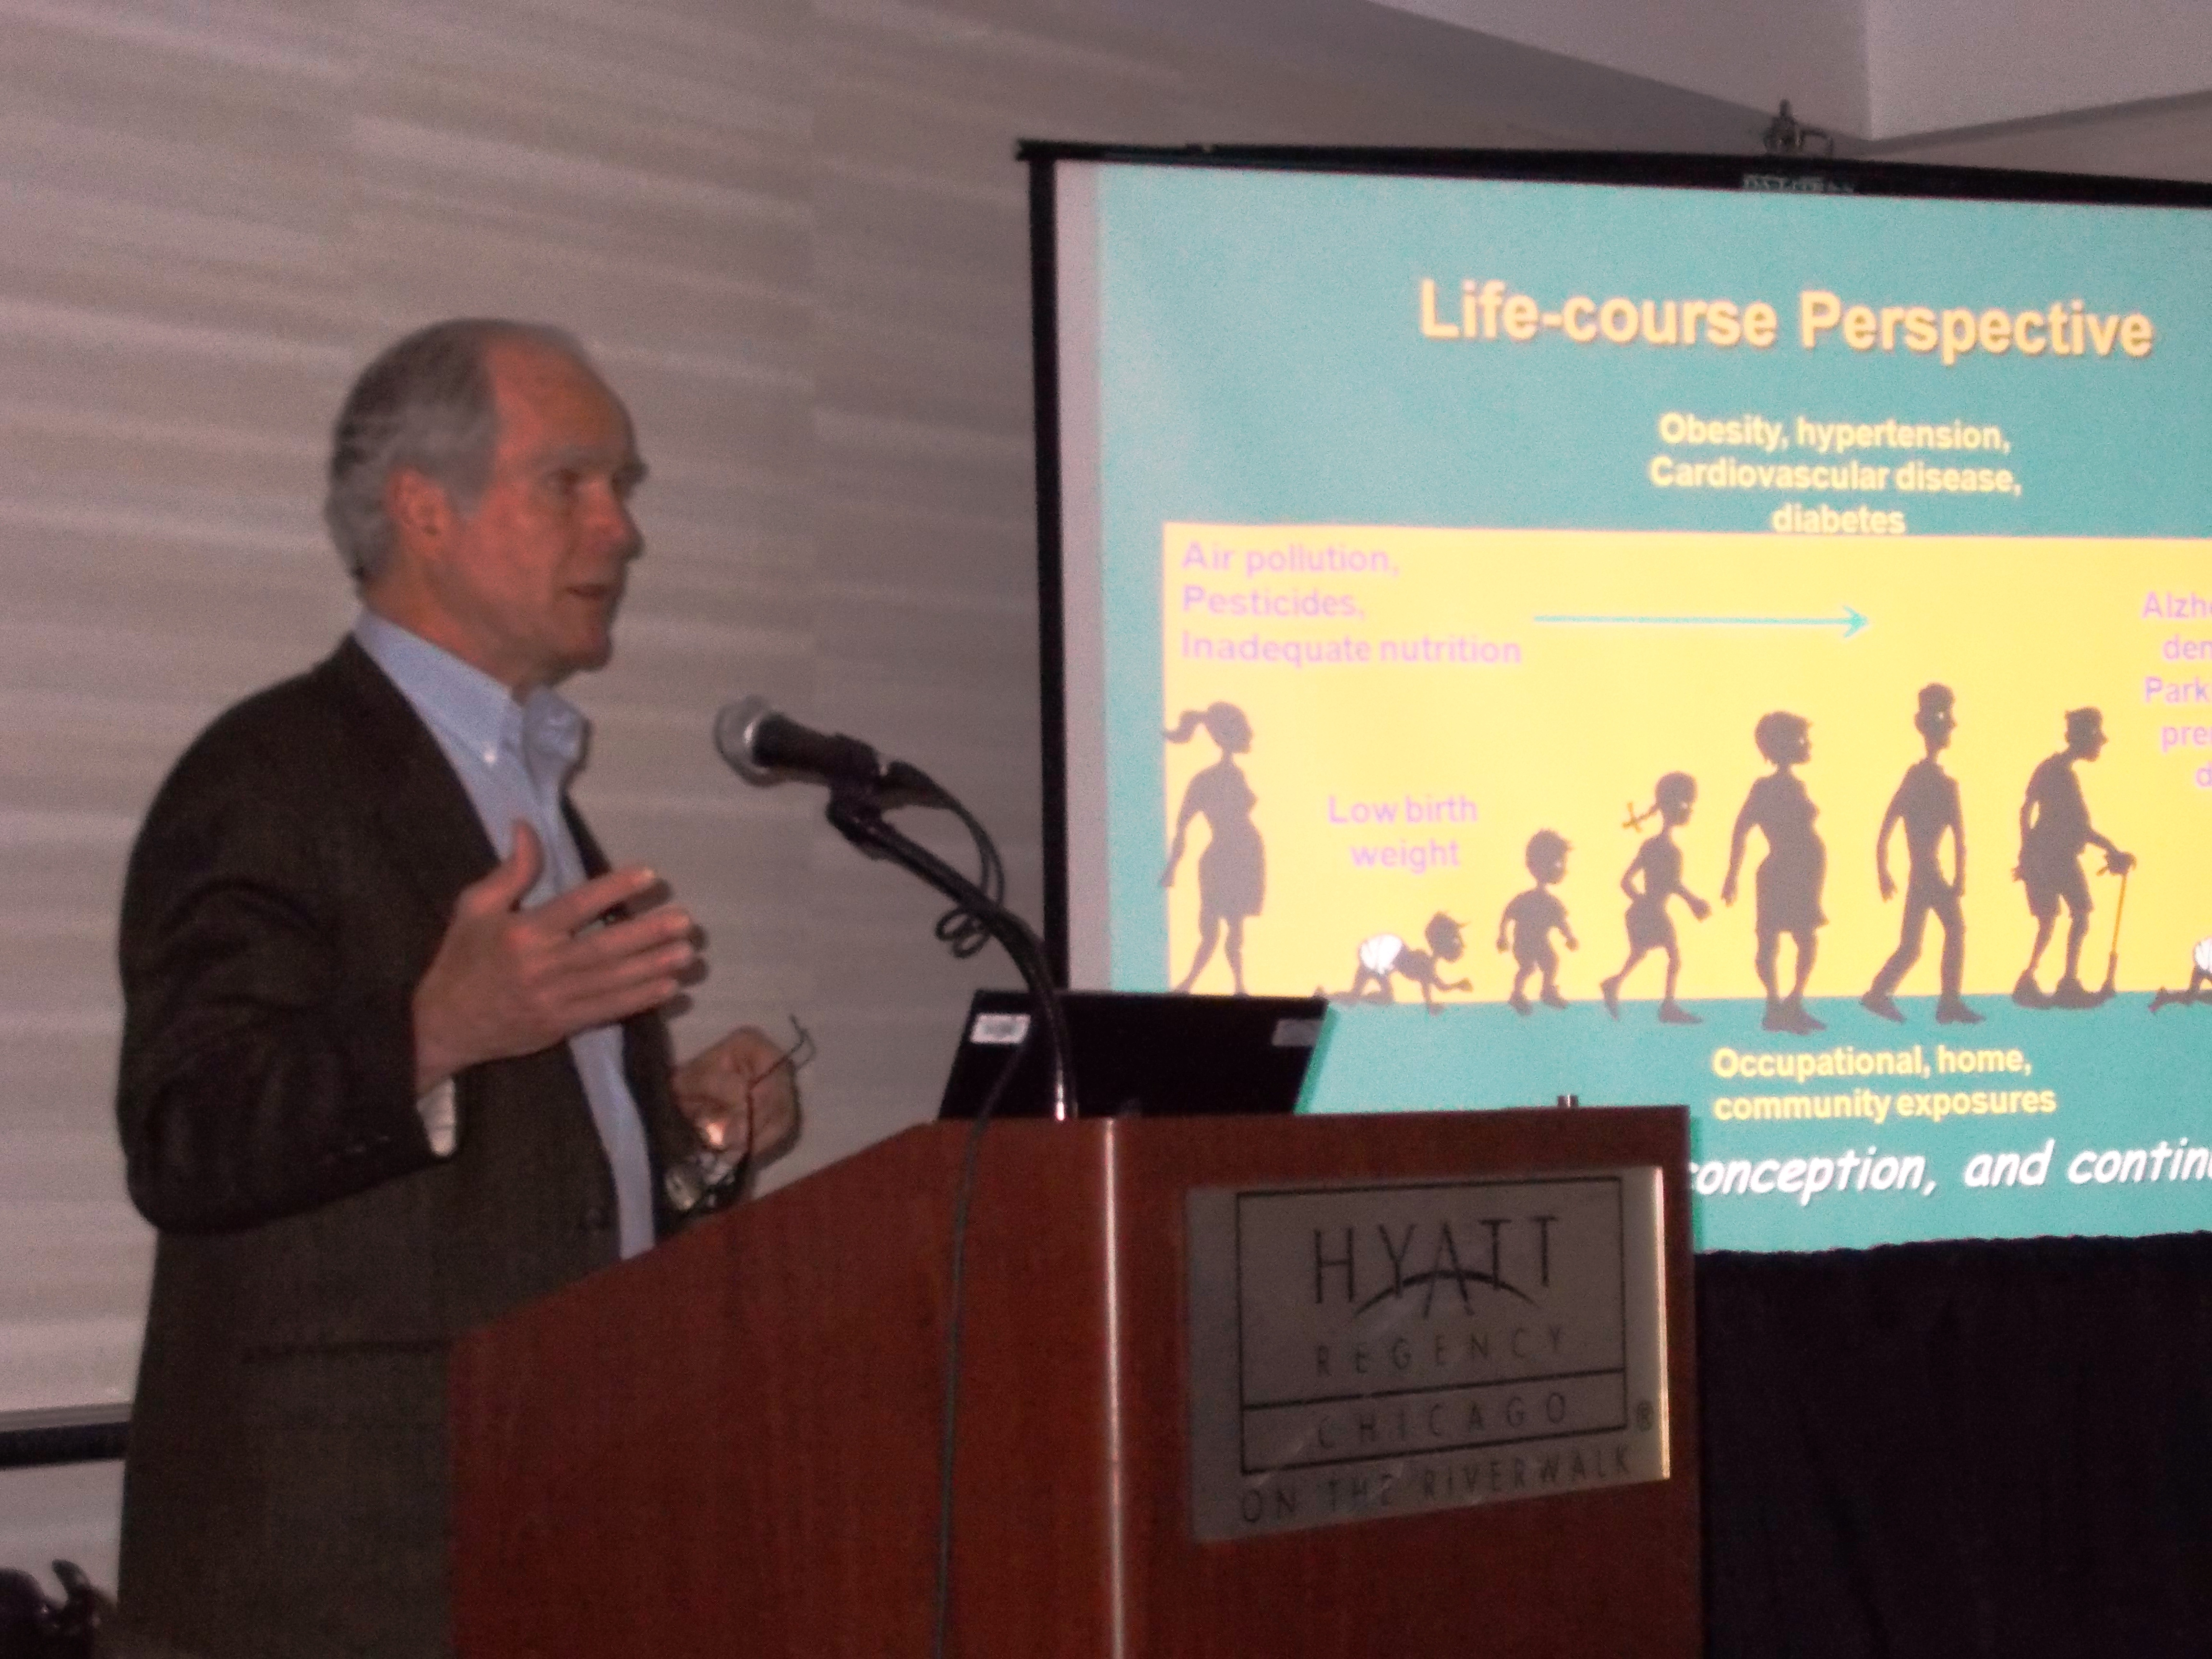 Dr. Ted Schettler speaks about environmental determinants of health across the lifespan at Chicago Aging in America conference